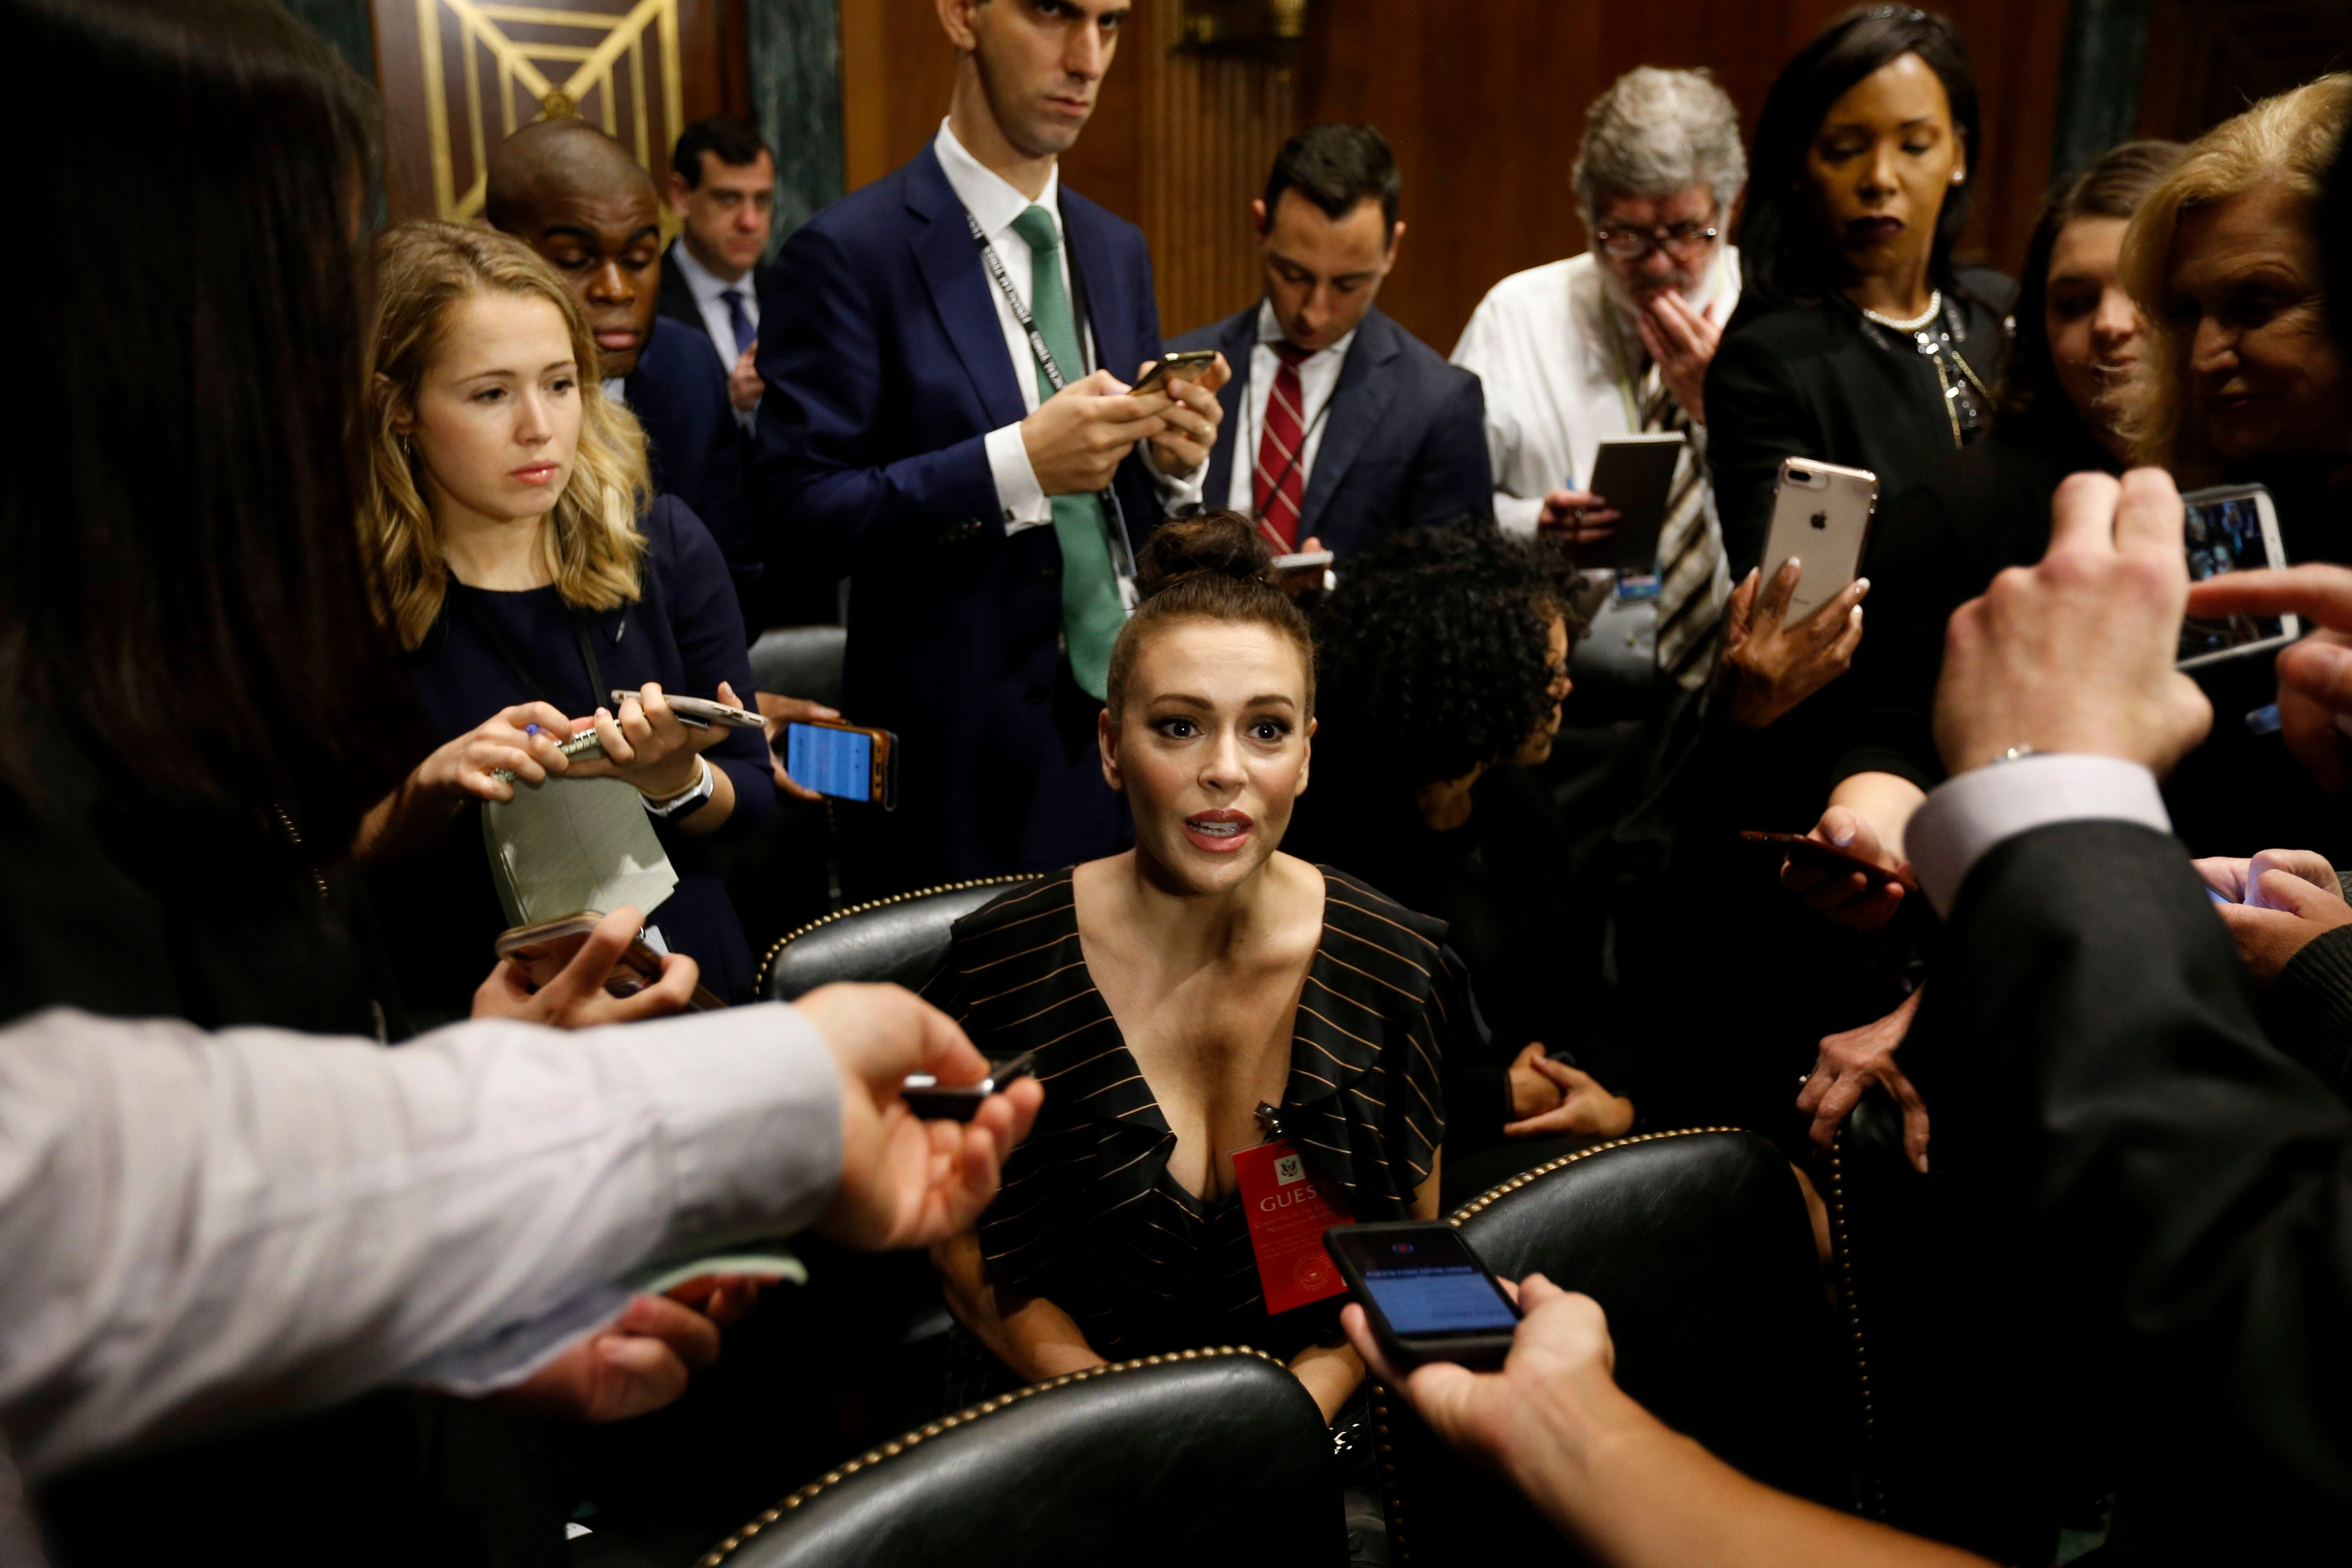 Alyssa Milano: 'I did not have my phone confiscated' at Ford/Kavanaugh hearing